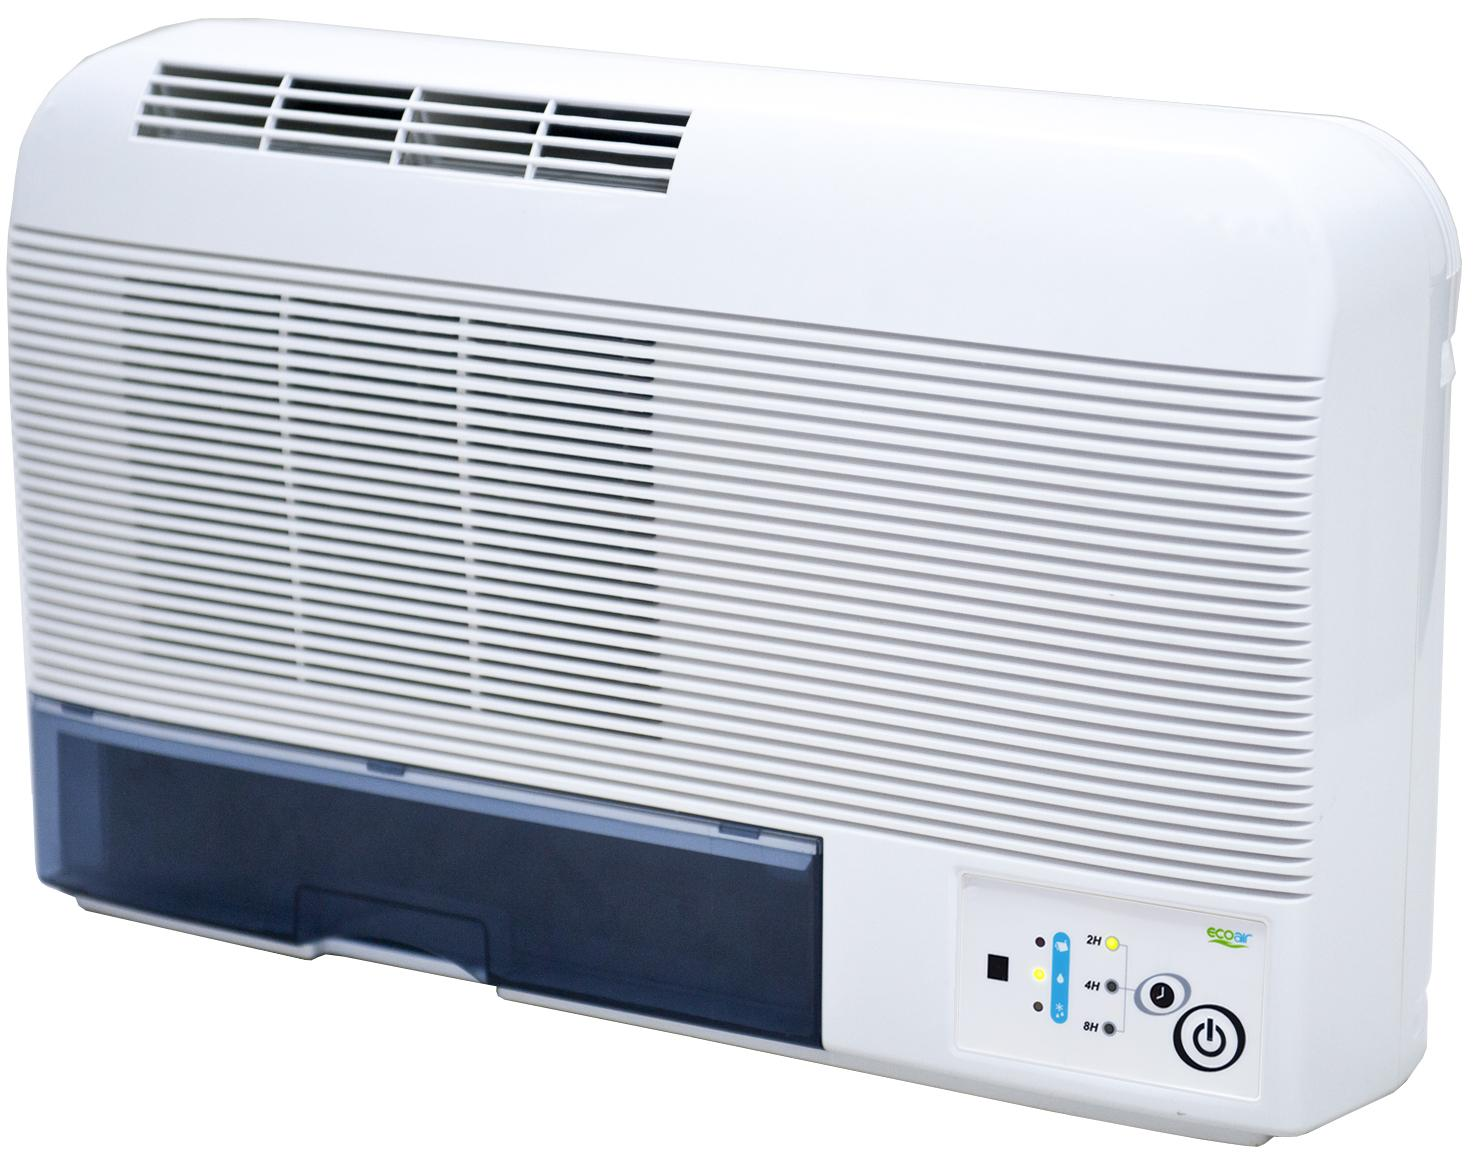 Eco Air Dcw10 Ipx2 Rated Wall Mountable Bathroom Dehumidifier Dehumidifiers Portable